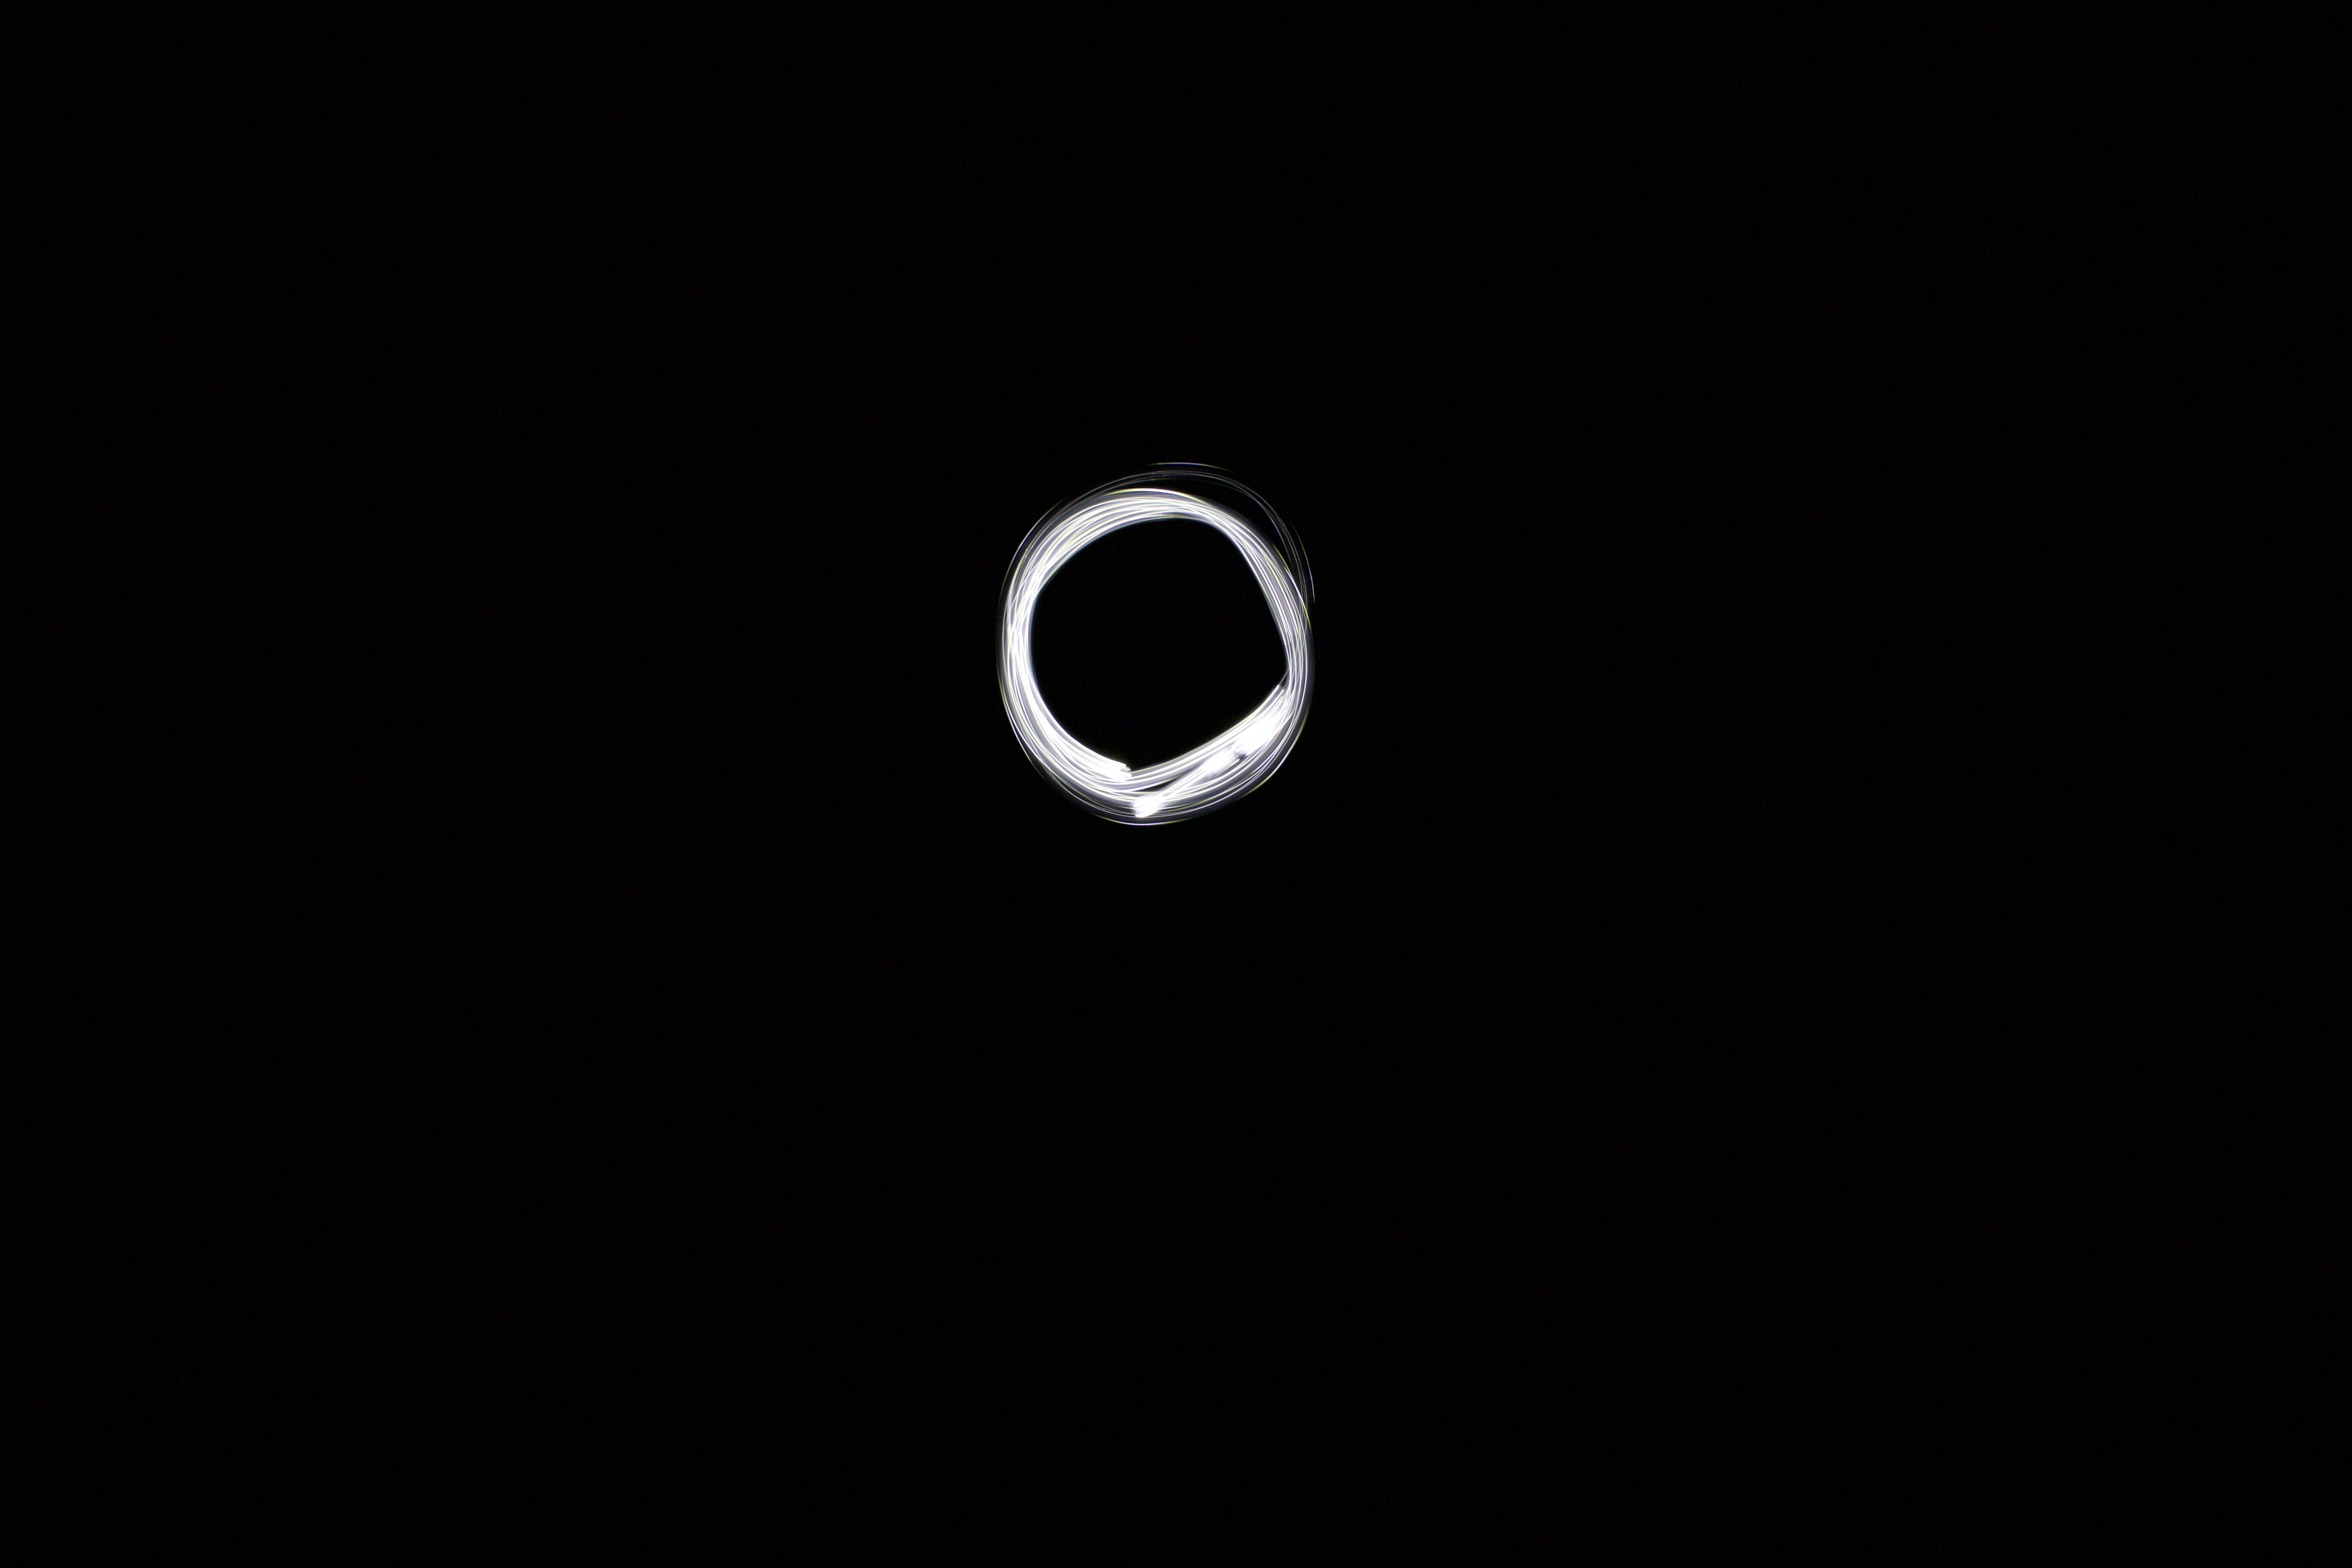 Spiral of white light in black background